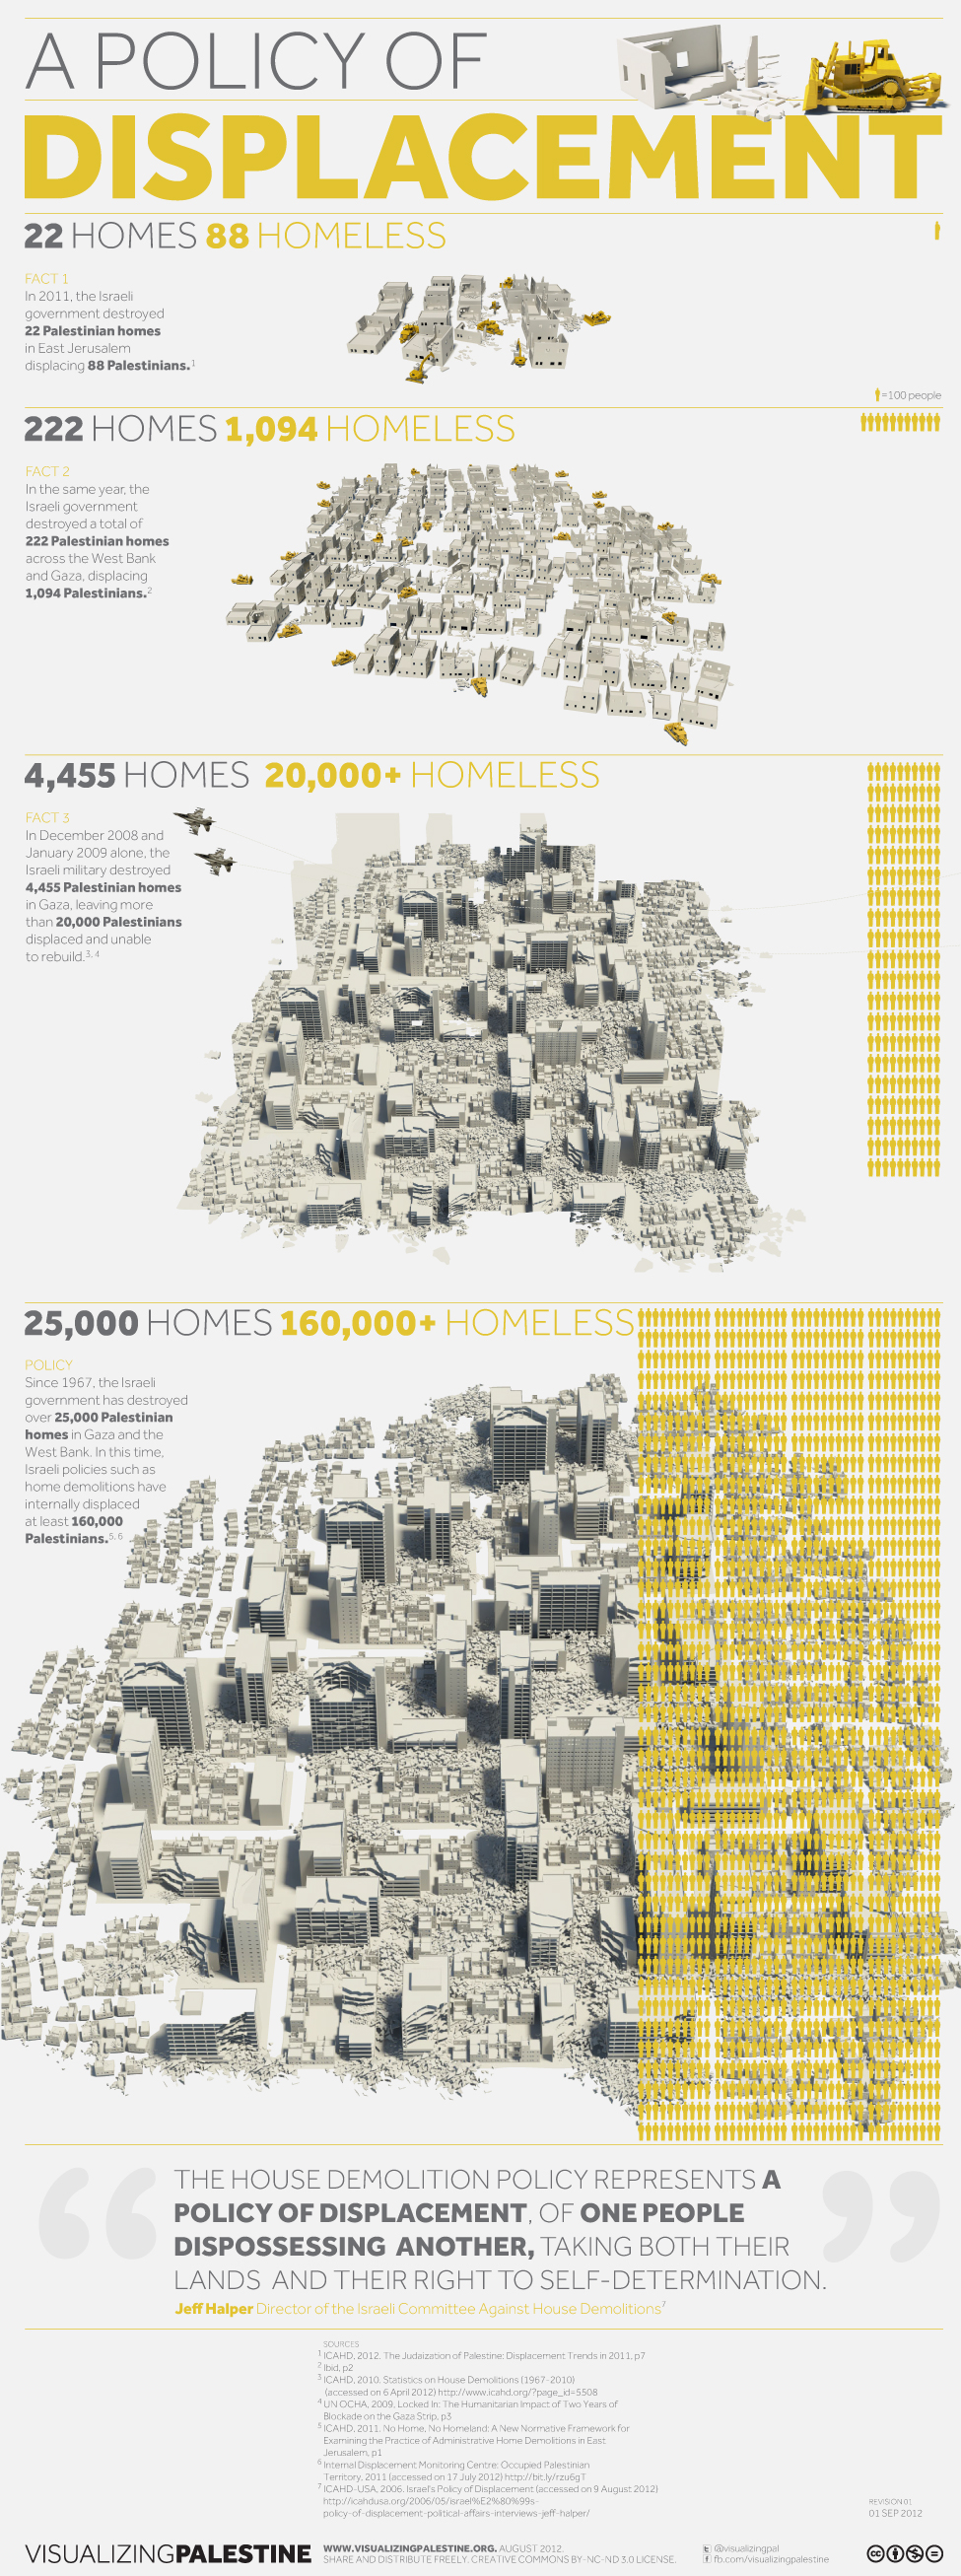 A Policy of Displacement: Israeli House Demolitions in Gaza and the West Bank